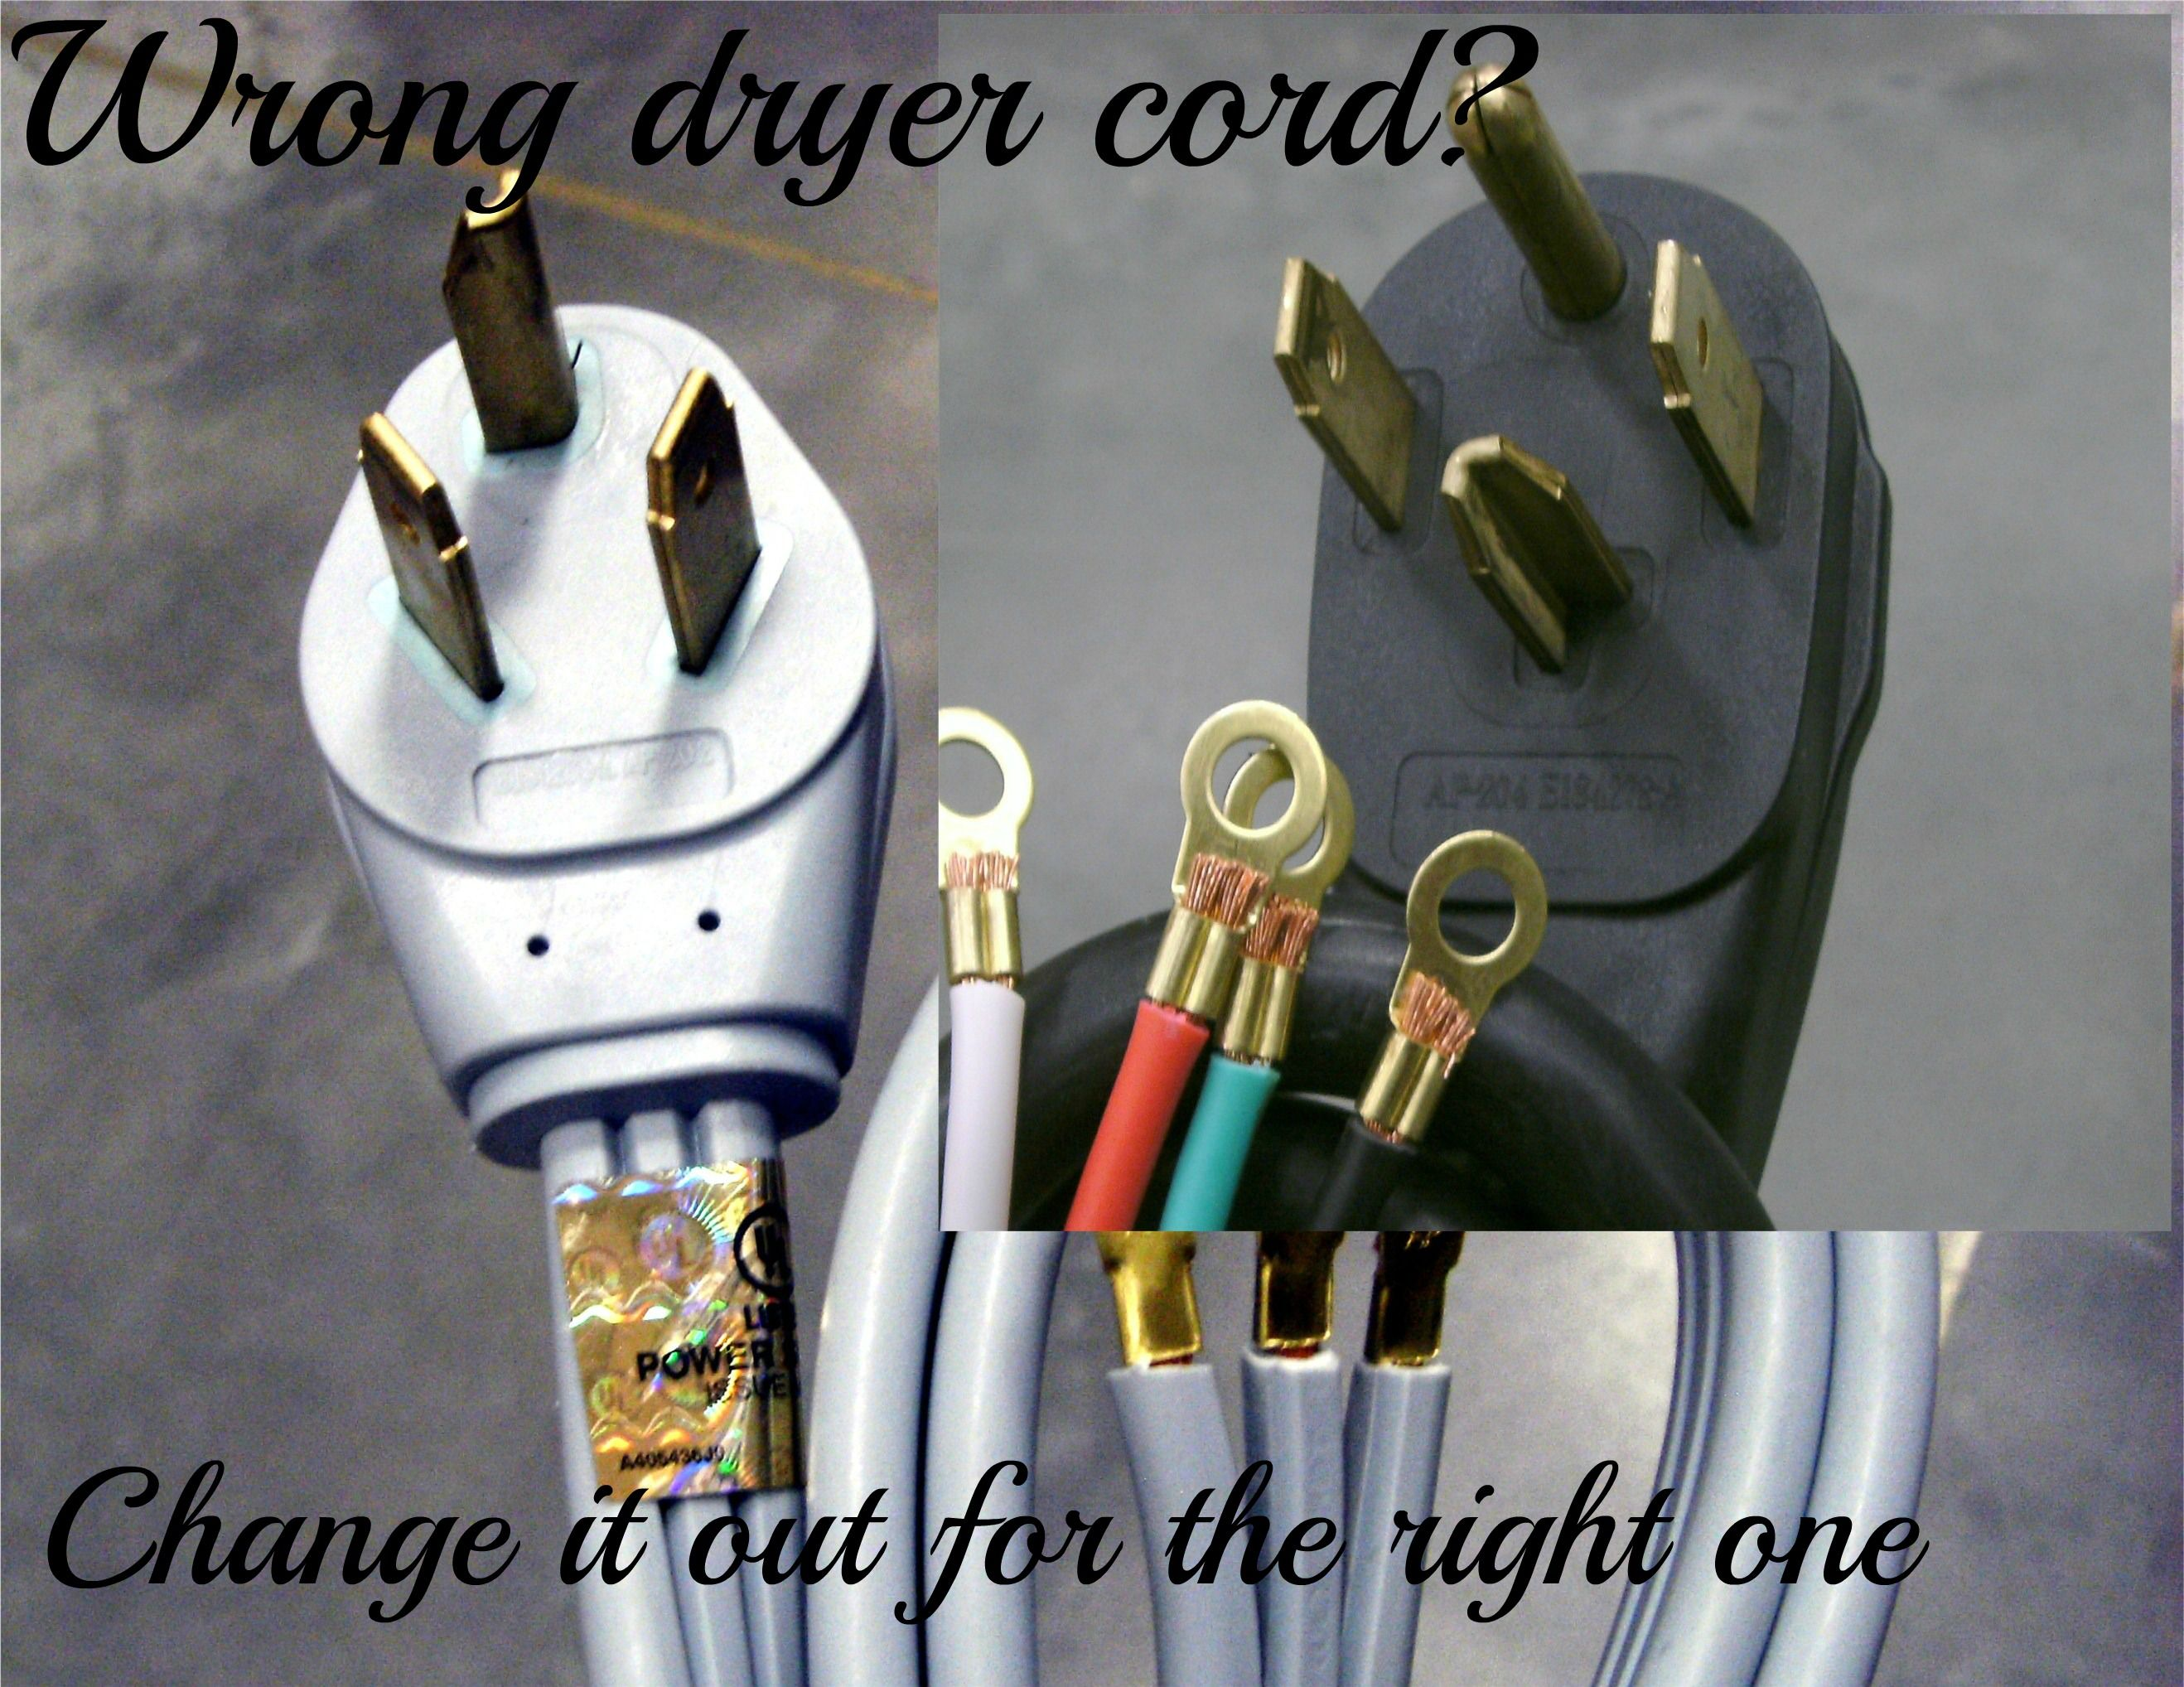 wiring diagram for a 4 prong dryer plug the wiring diagram wiring a dryer 4 prong vidim wiring diagram wiring diagram